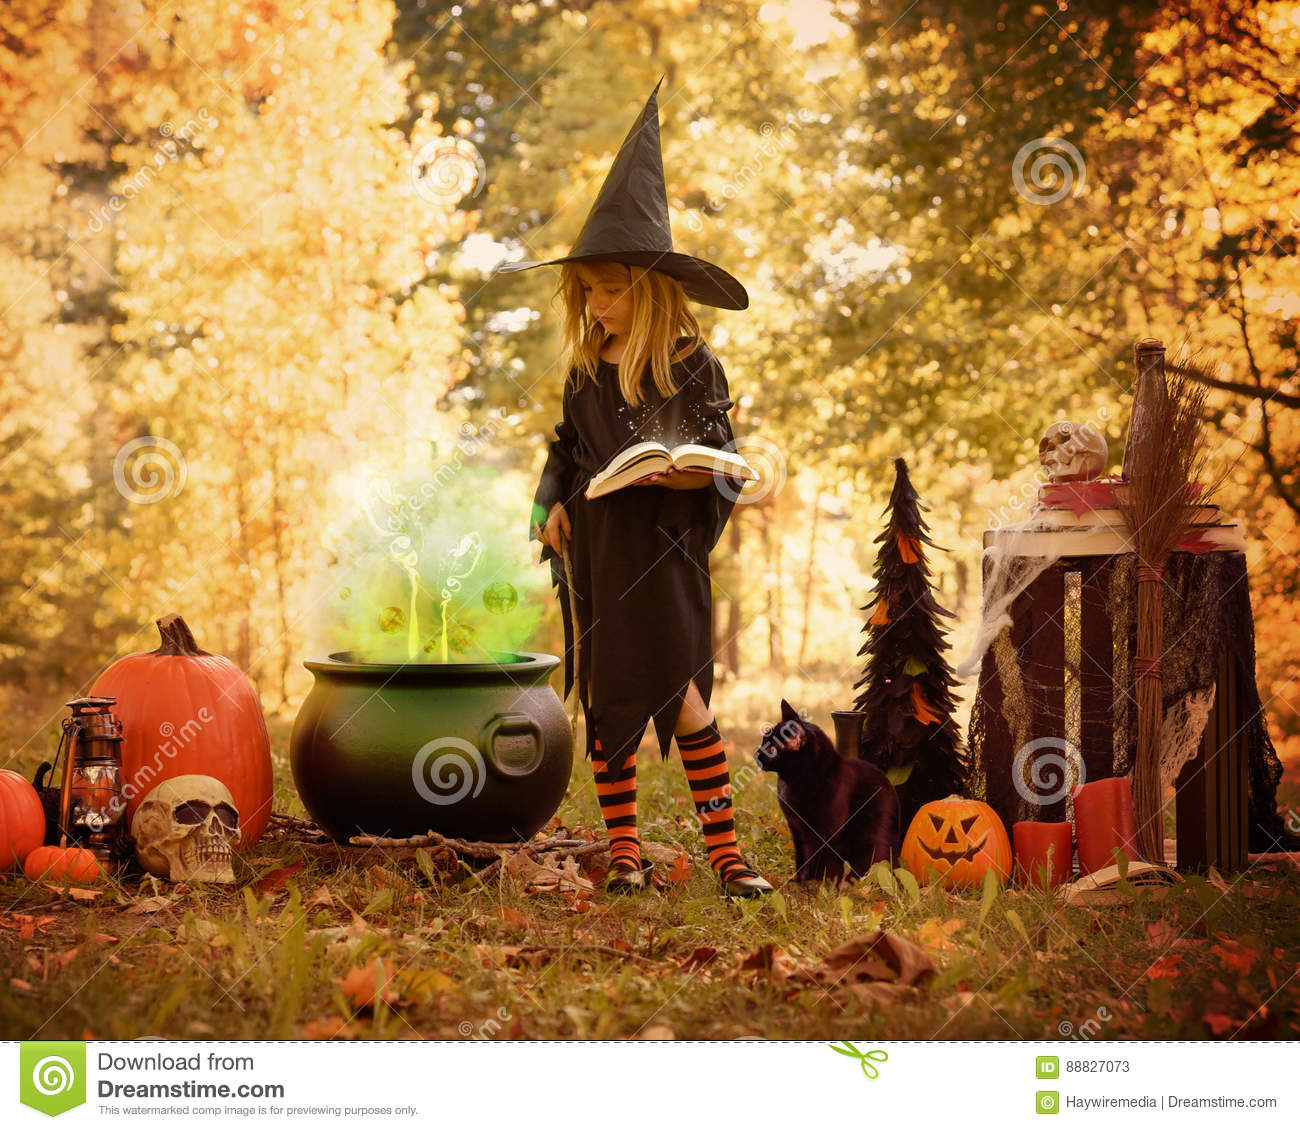 Little Girl in Witch Costume Outside with Magic Book